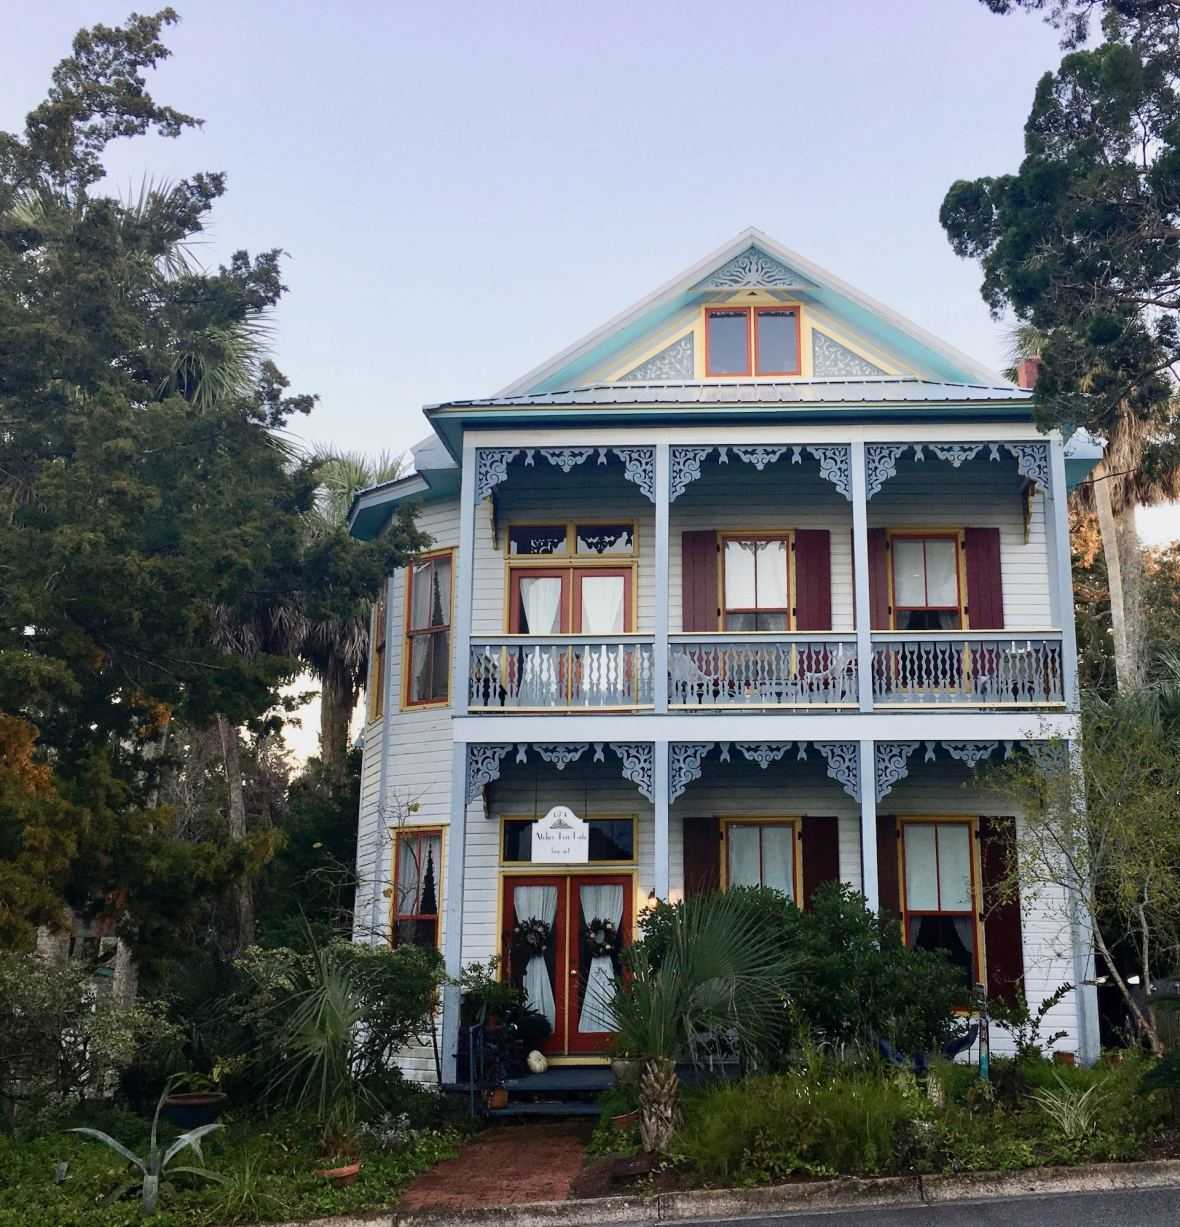 19th Century home in Cedar Key